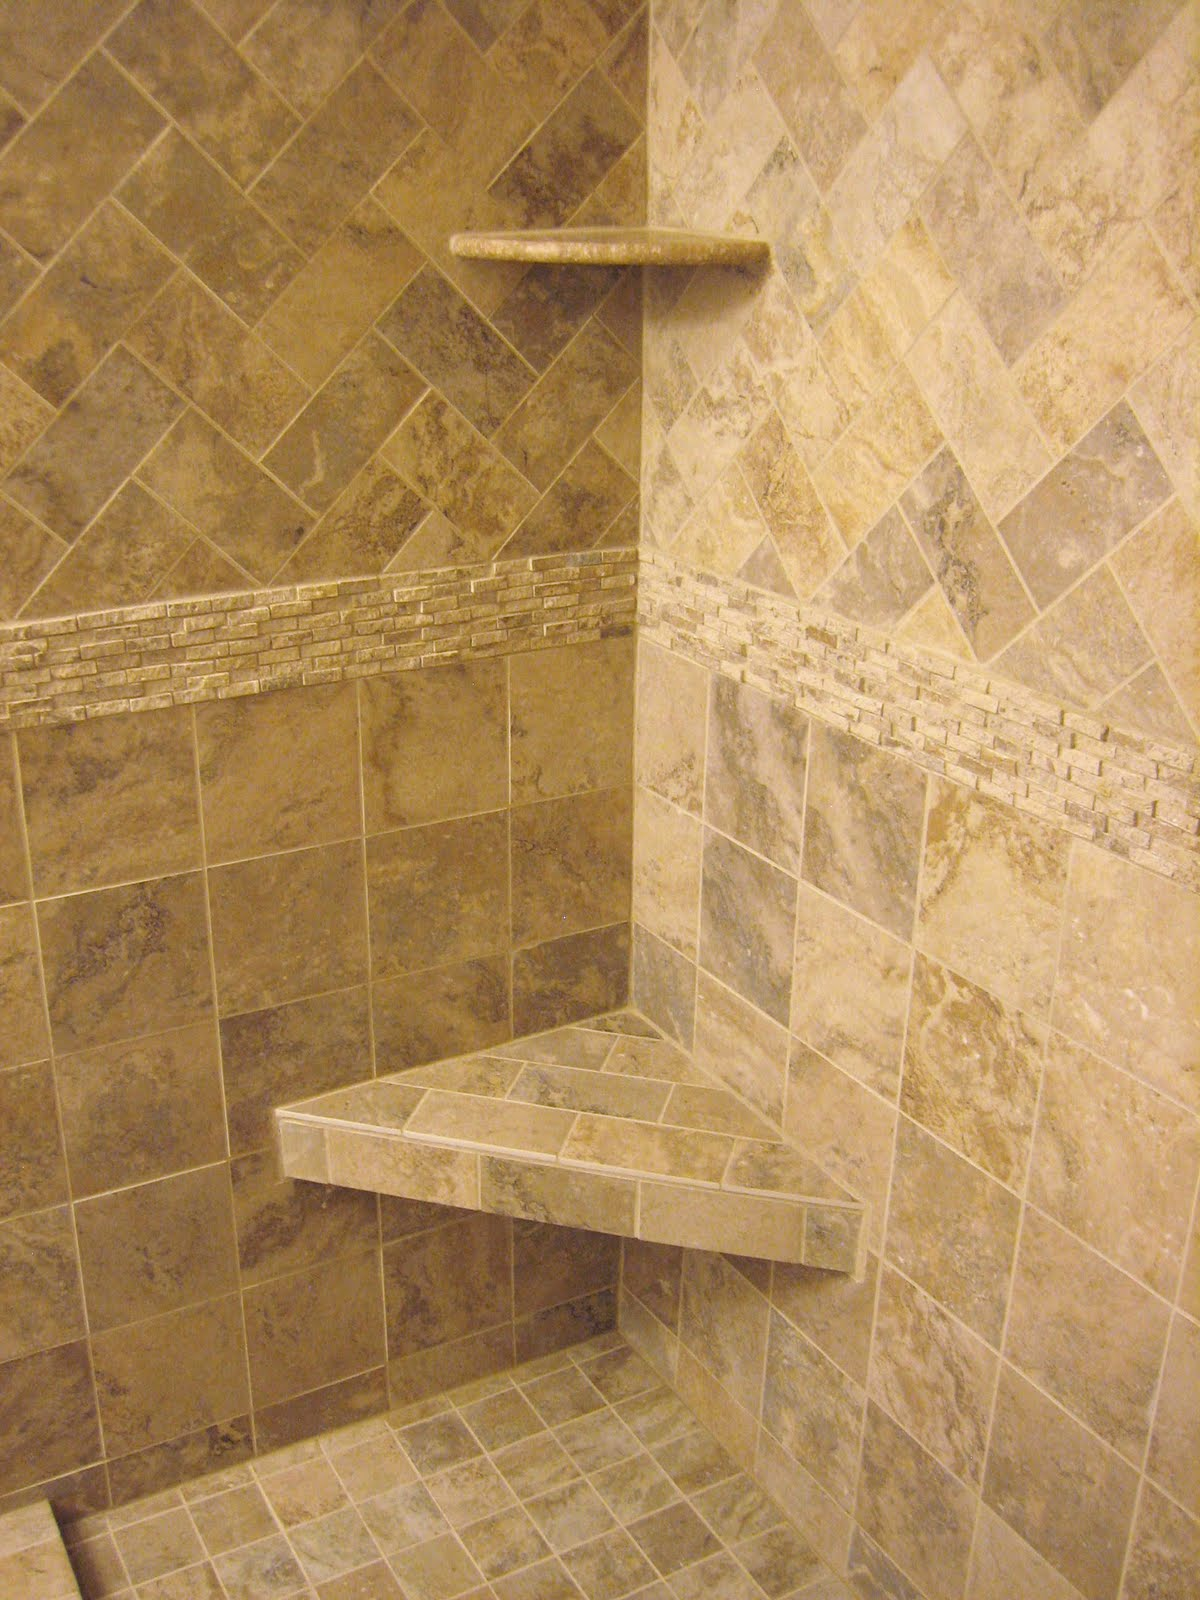 Simple Trendy Bathroom Tile Patterns For 2012  Bathroom Floor Tile Patterns